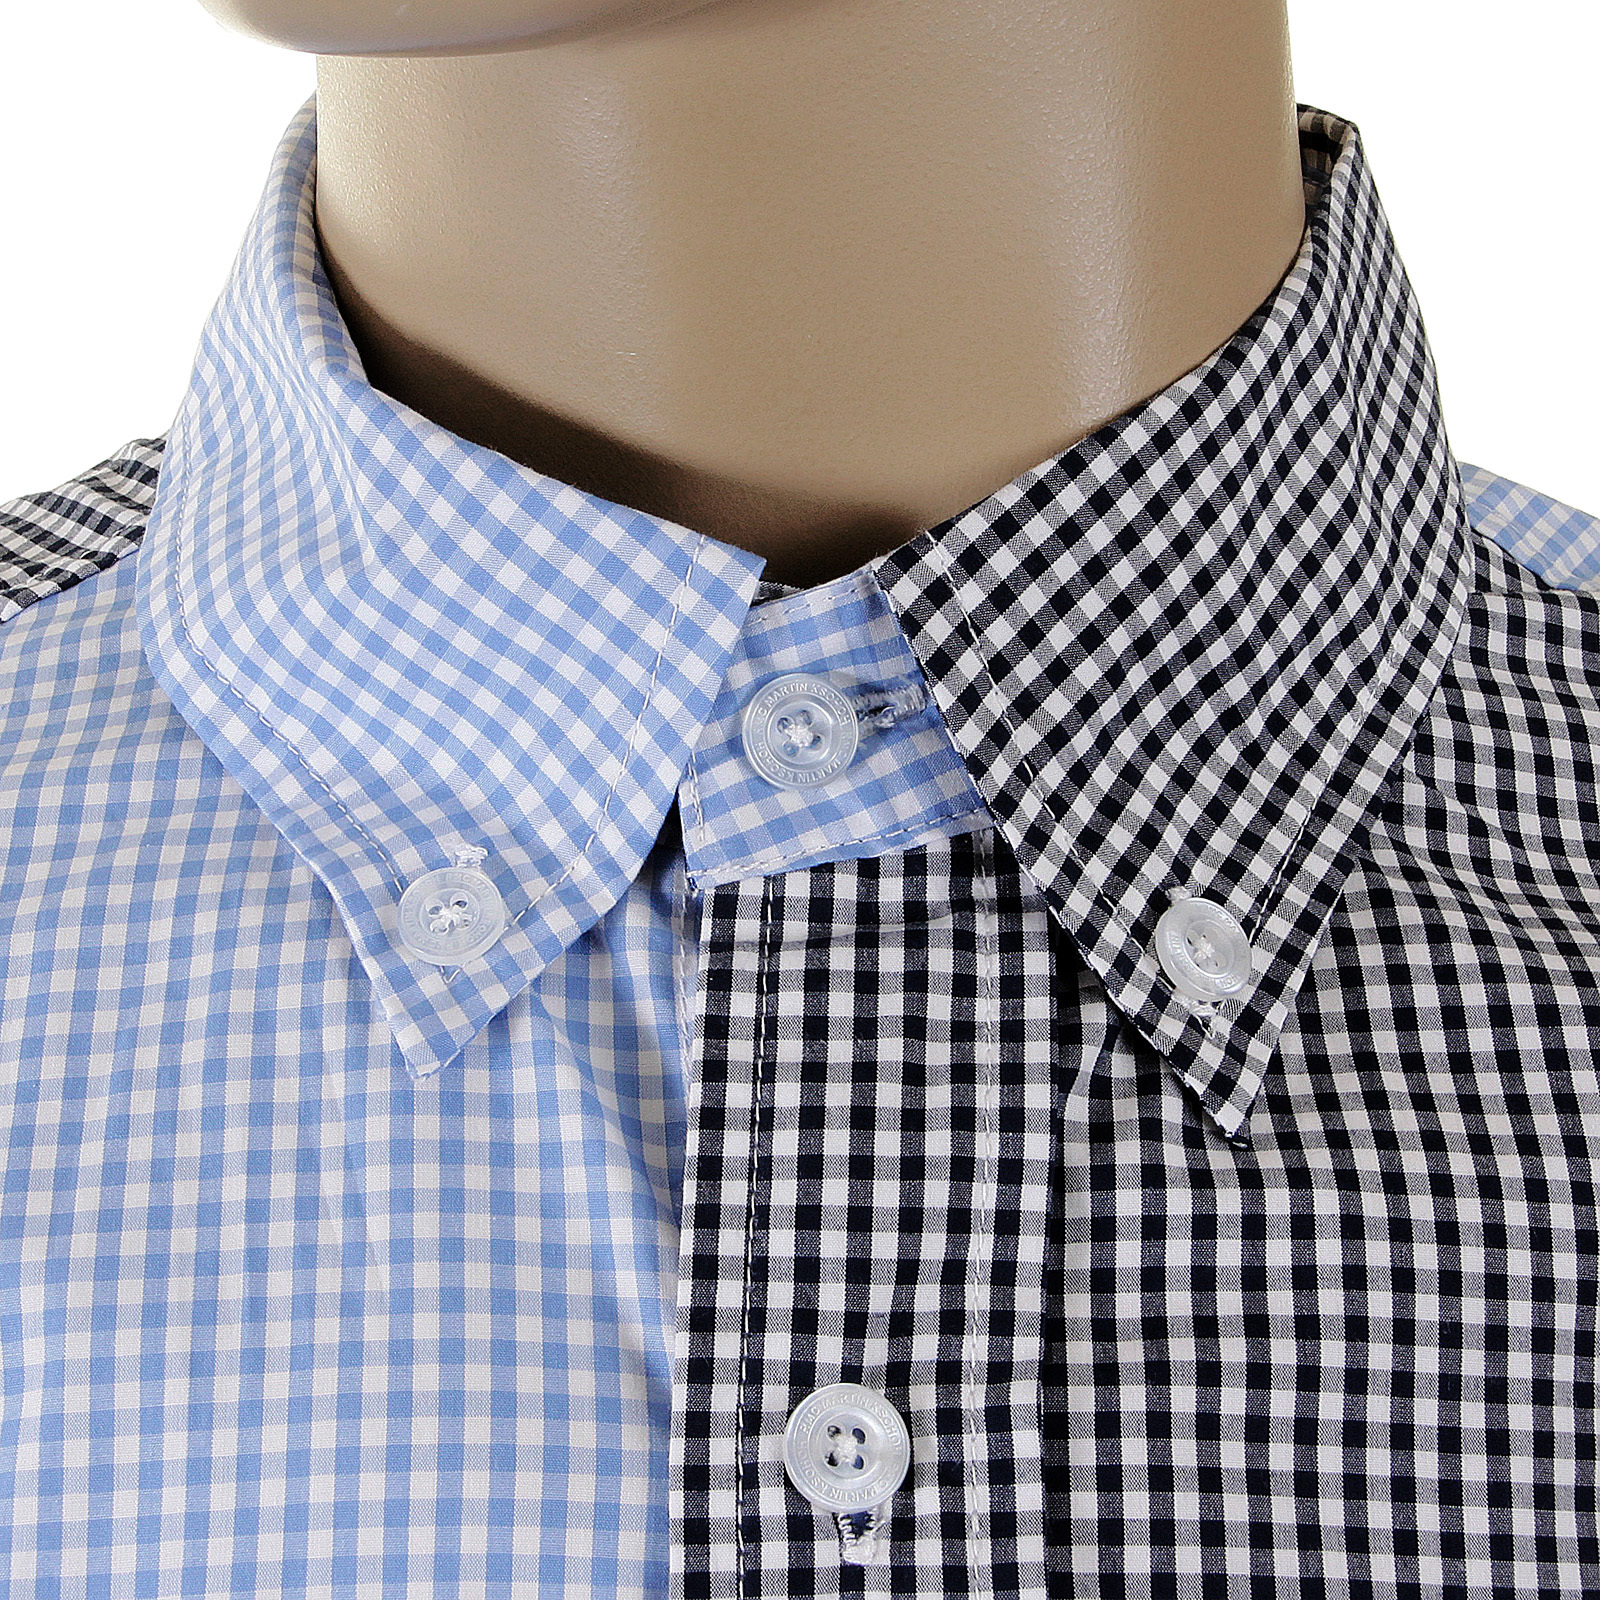 193166b2 RMC MKWS Mens Regular Fit Blue and Black Patch Shirt with Long Sleeve  Button Down Collar